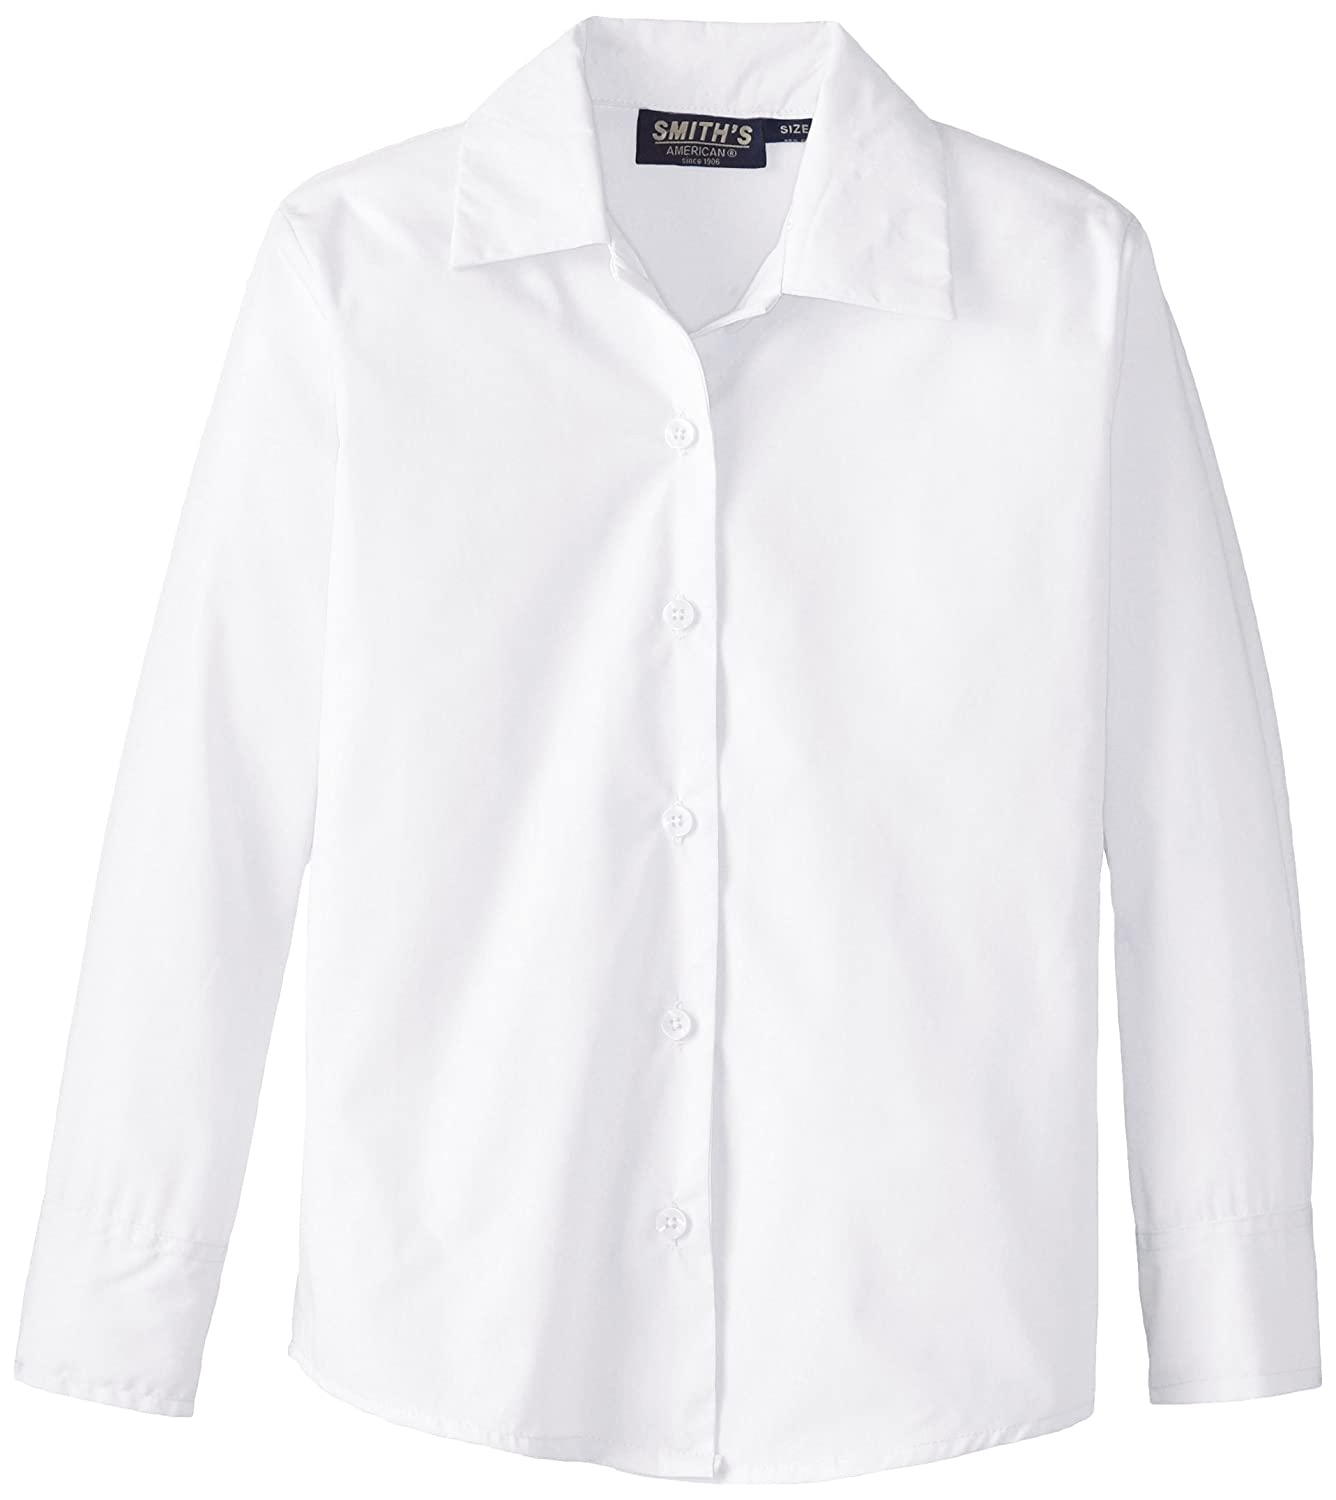 Smith's American Big Girls' Long Sleeve Pointed Collar Blouse IB50